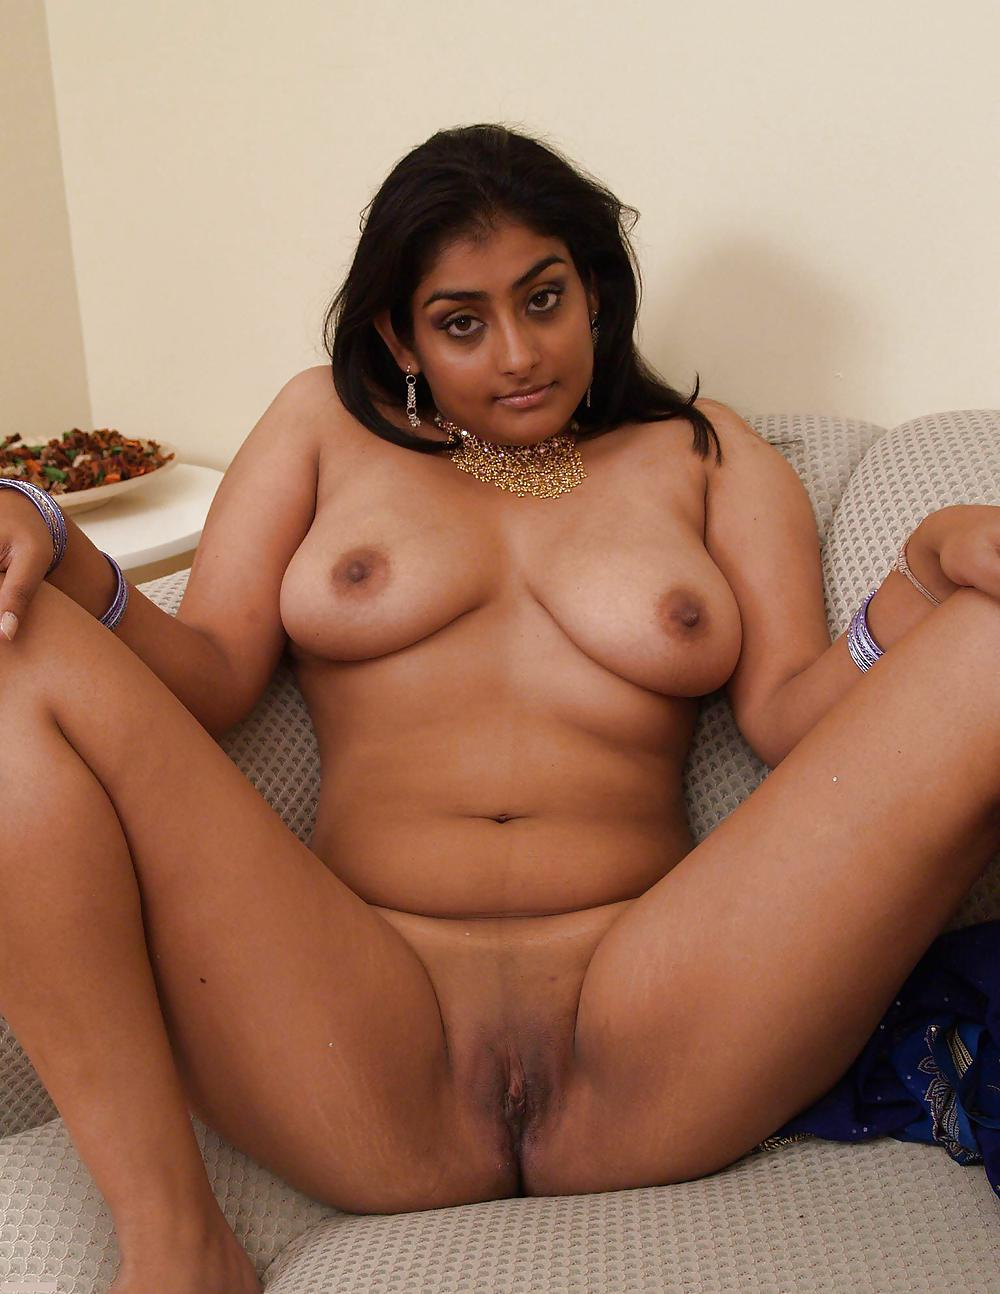 india-girl-pooja-bhatt-puzzy-porn-vadio-free-nurses-sex-videos